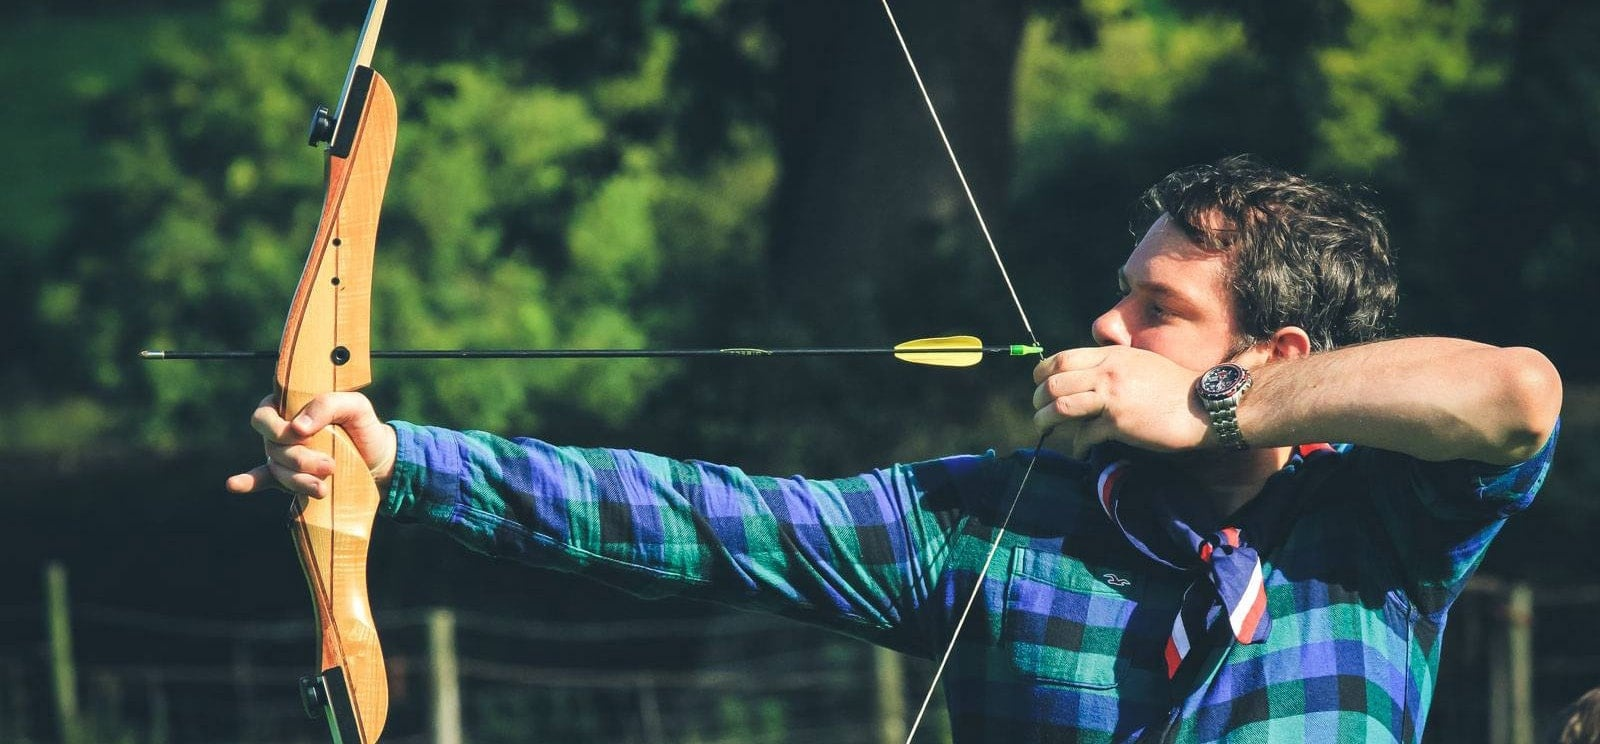 Half Day Archery Experience - North Wales-2